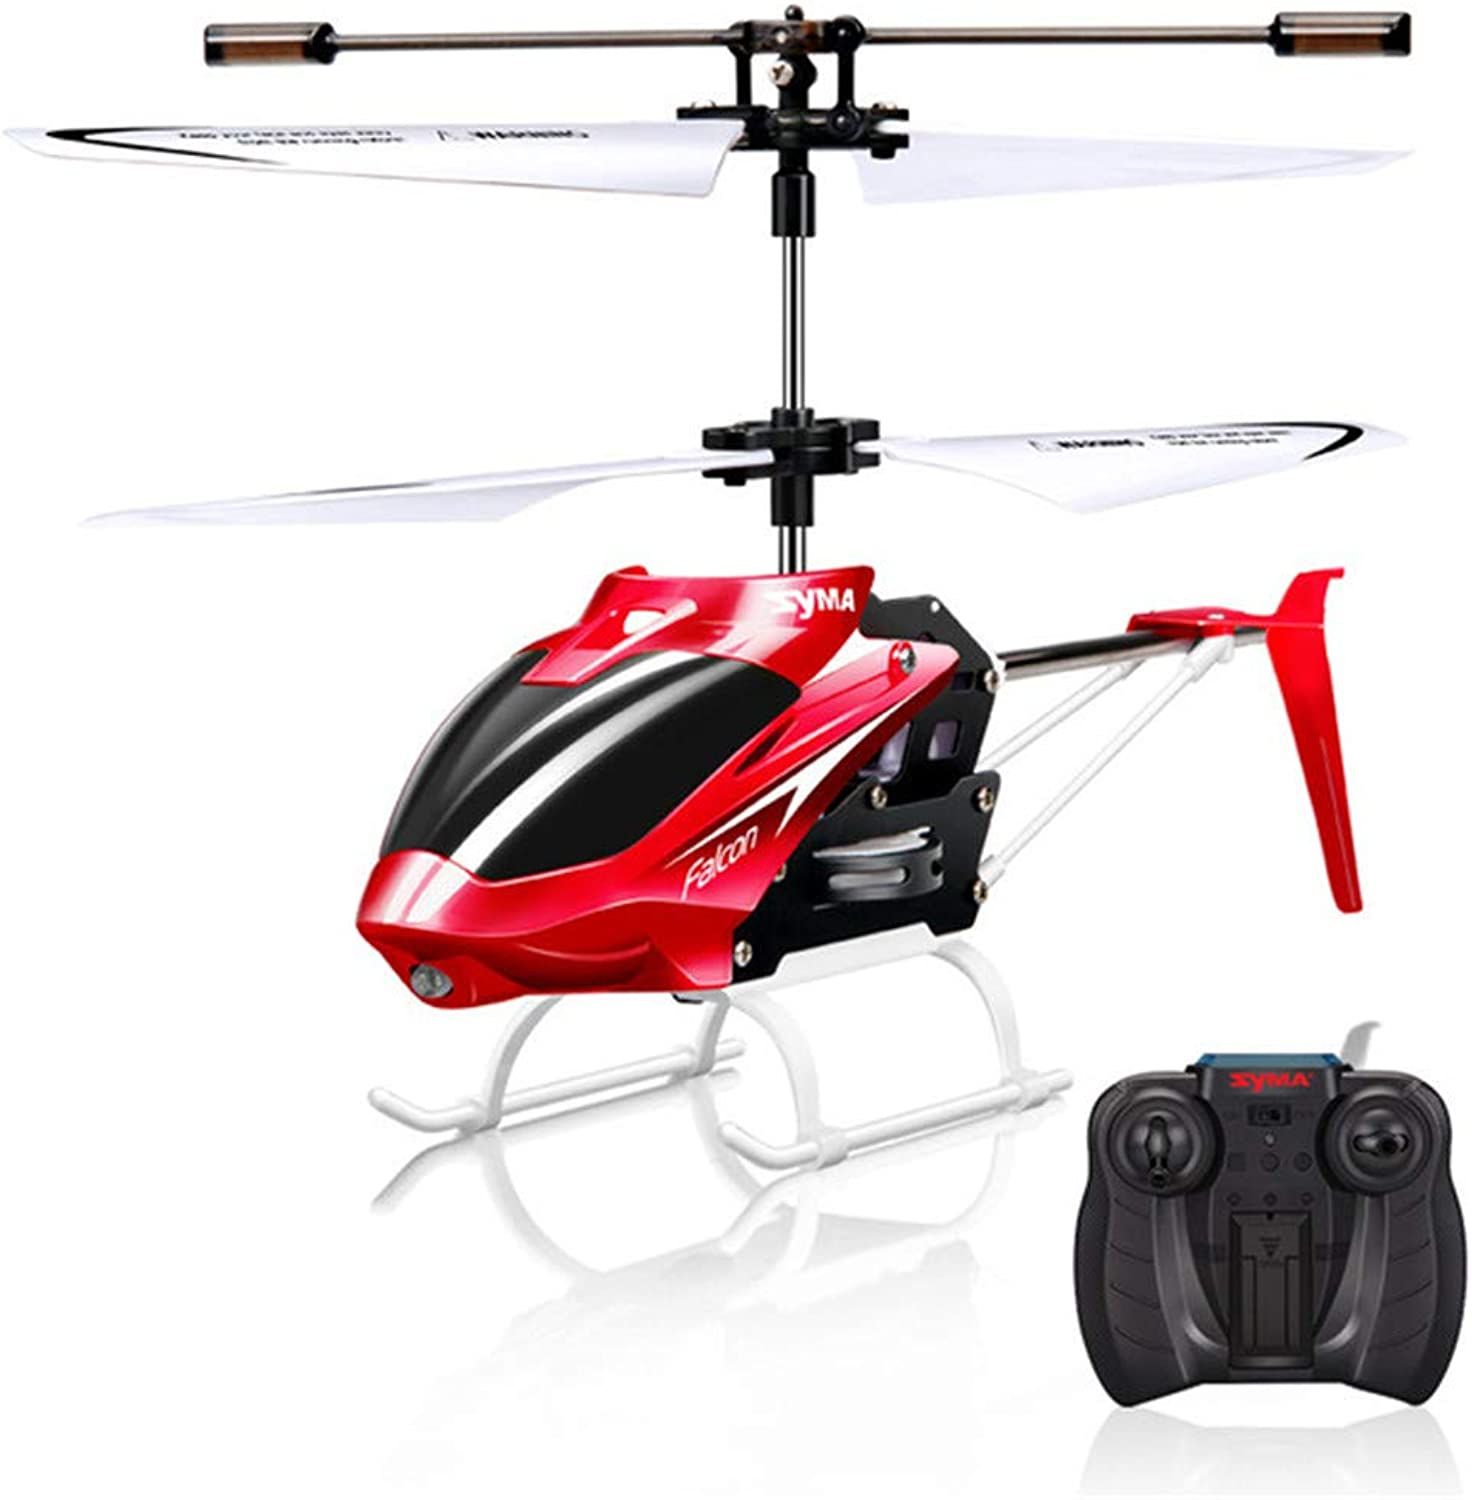 RC Helicopter 2 CH 2 Channel Mini RC Drone with Gyro Crash Resistant RC Toys for Boy Kids Gift Red Yellow,Red